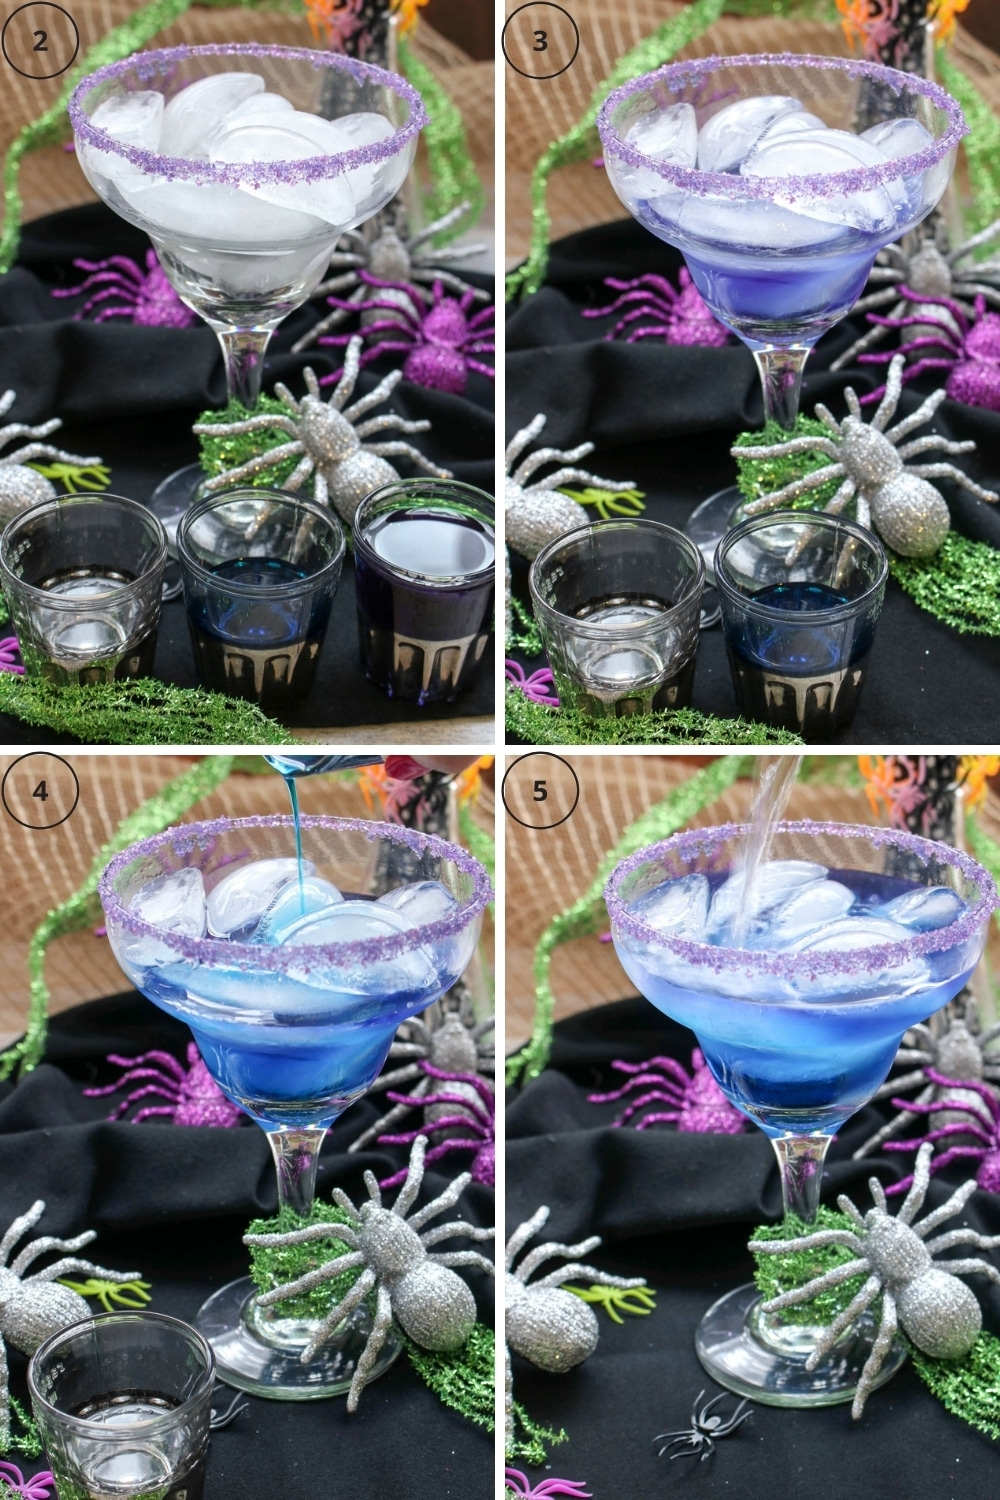 Collage showing the steps to make the gin and tonic cocktail